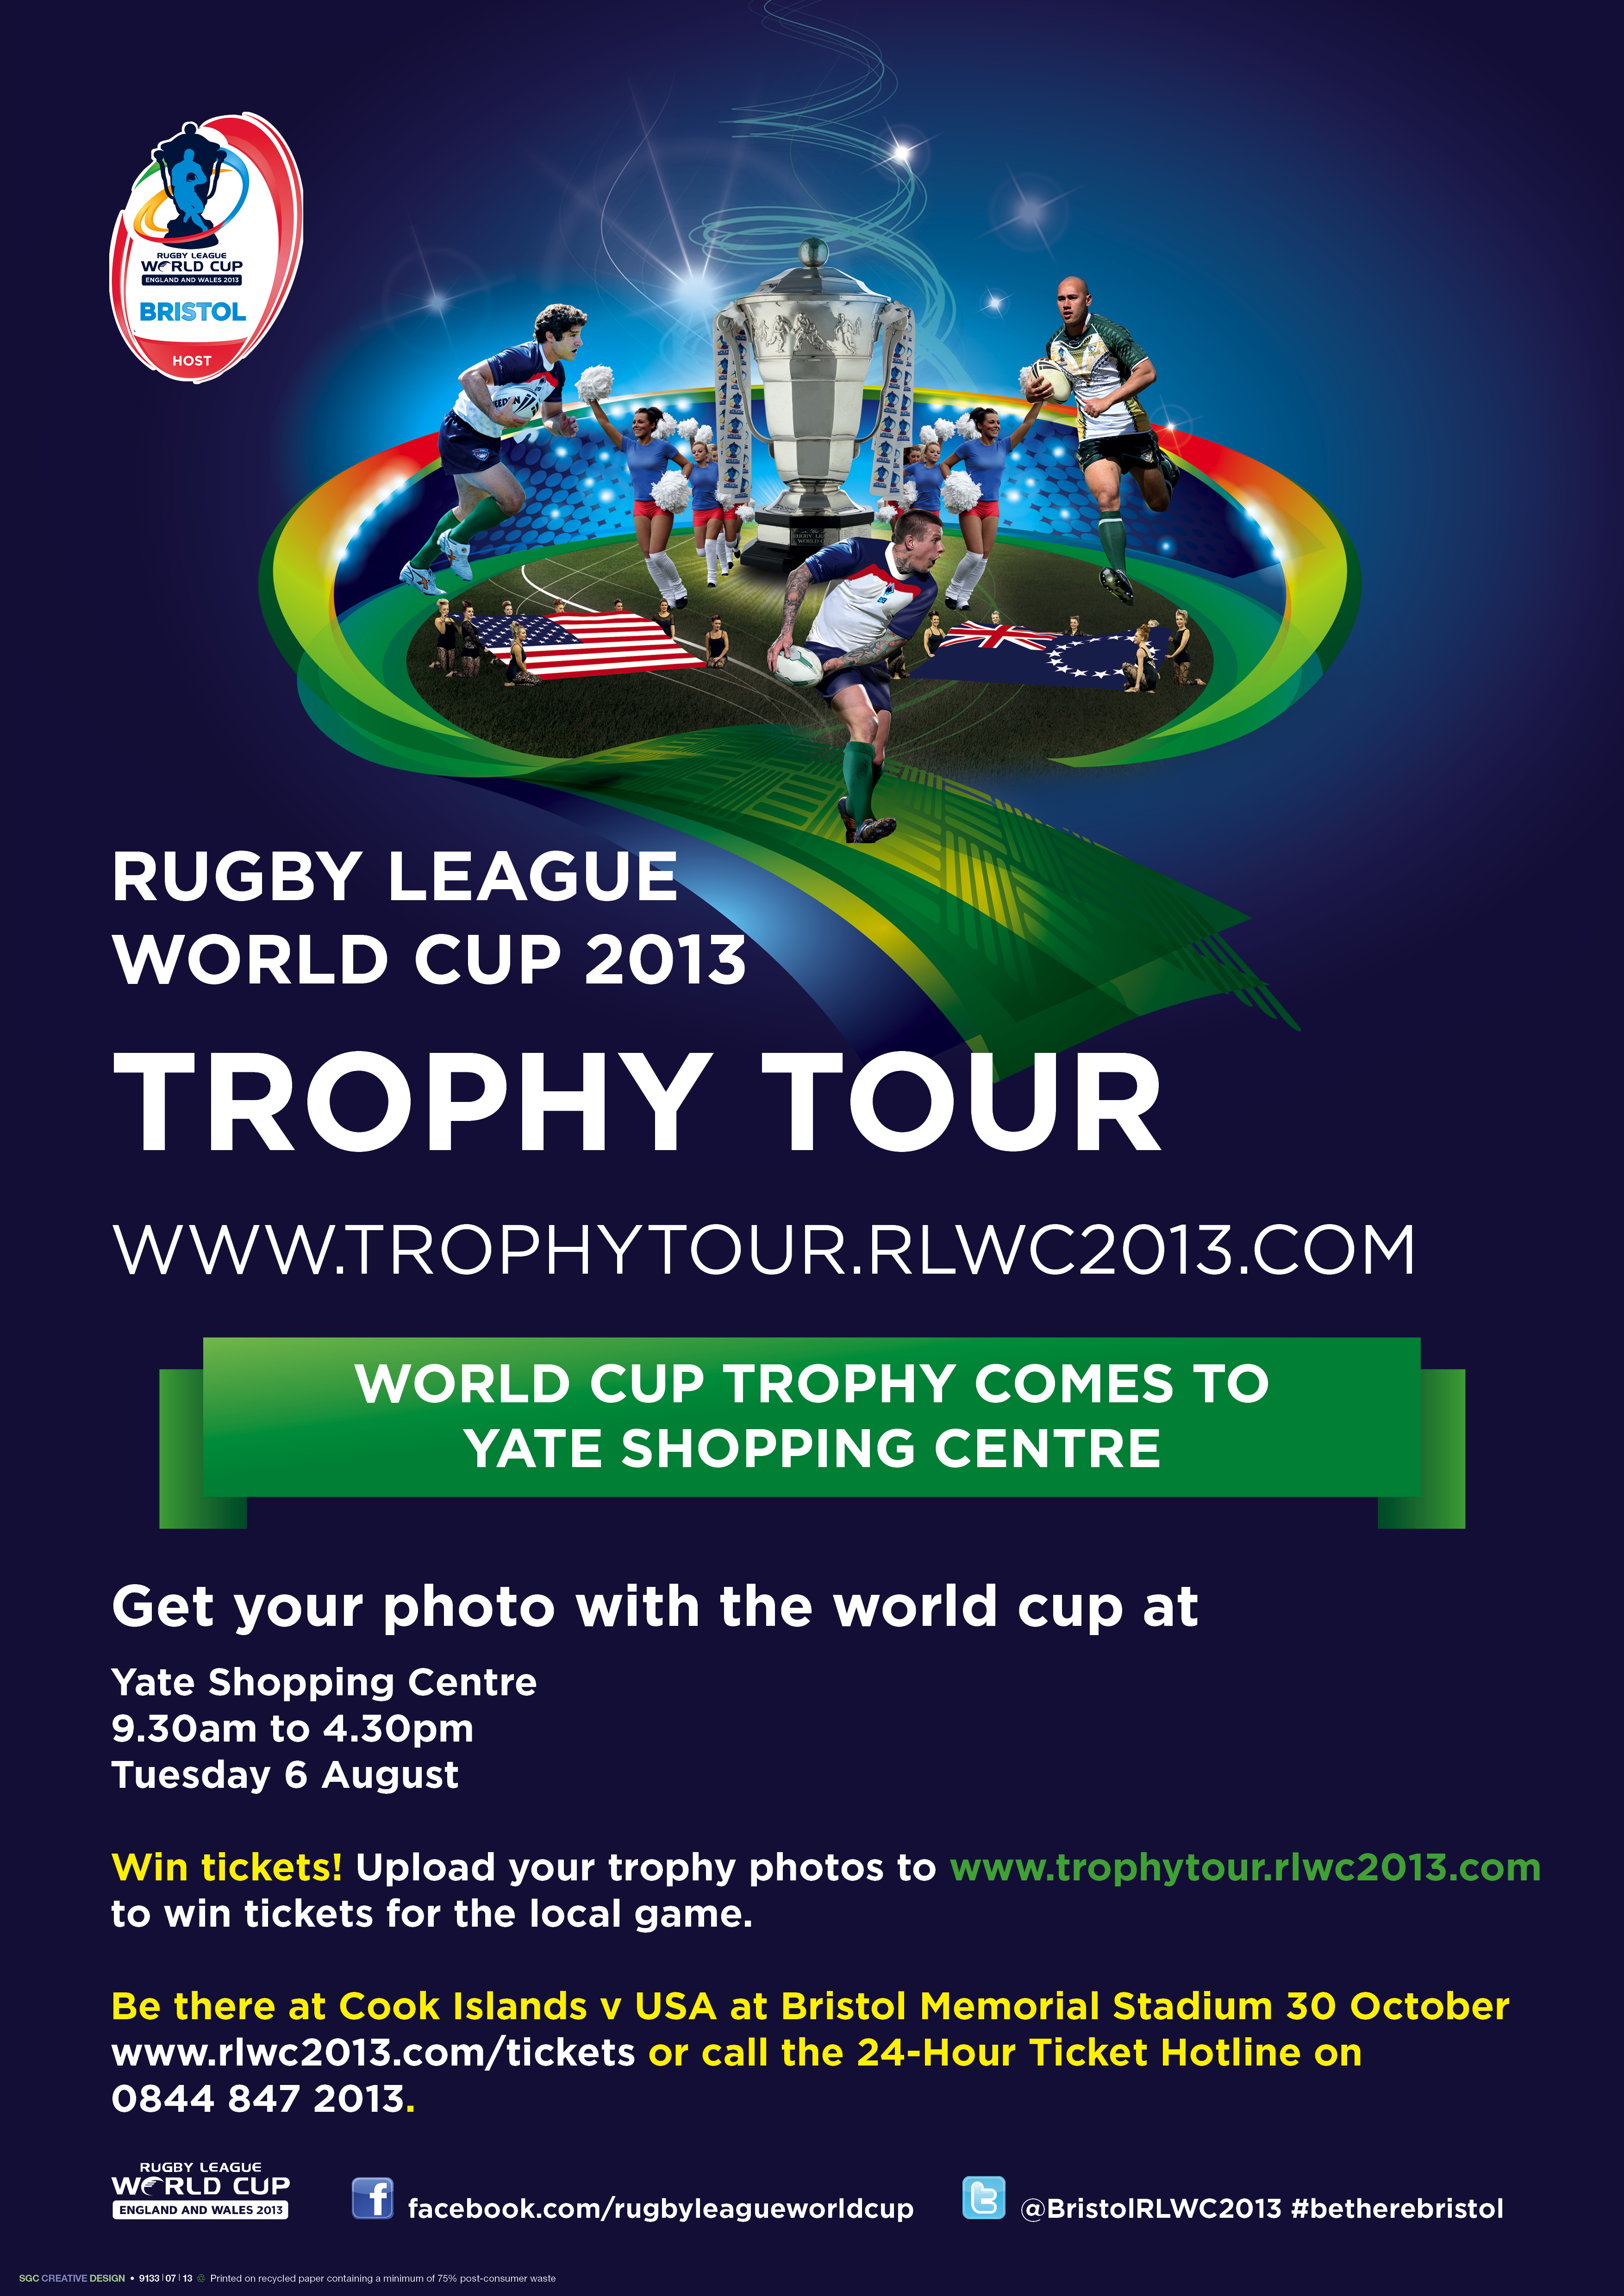 Rugby League World Cup 2013 Trophy Tour